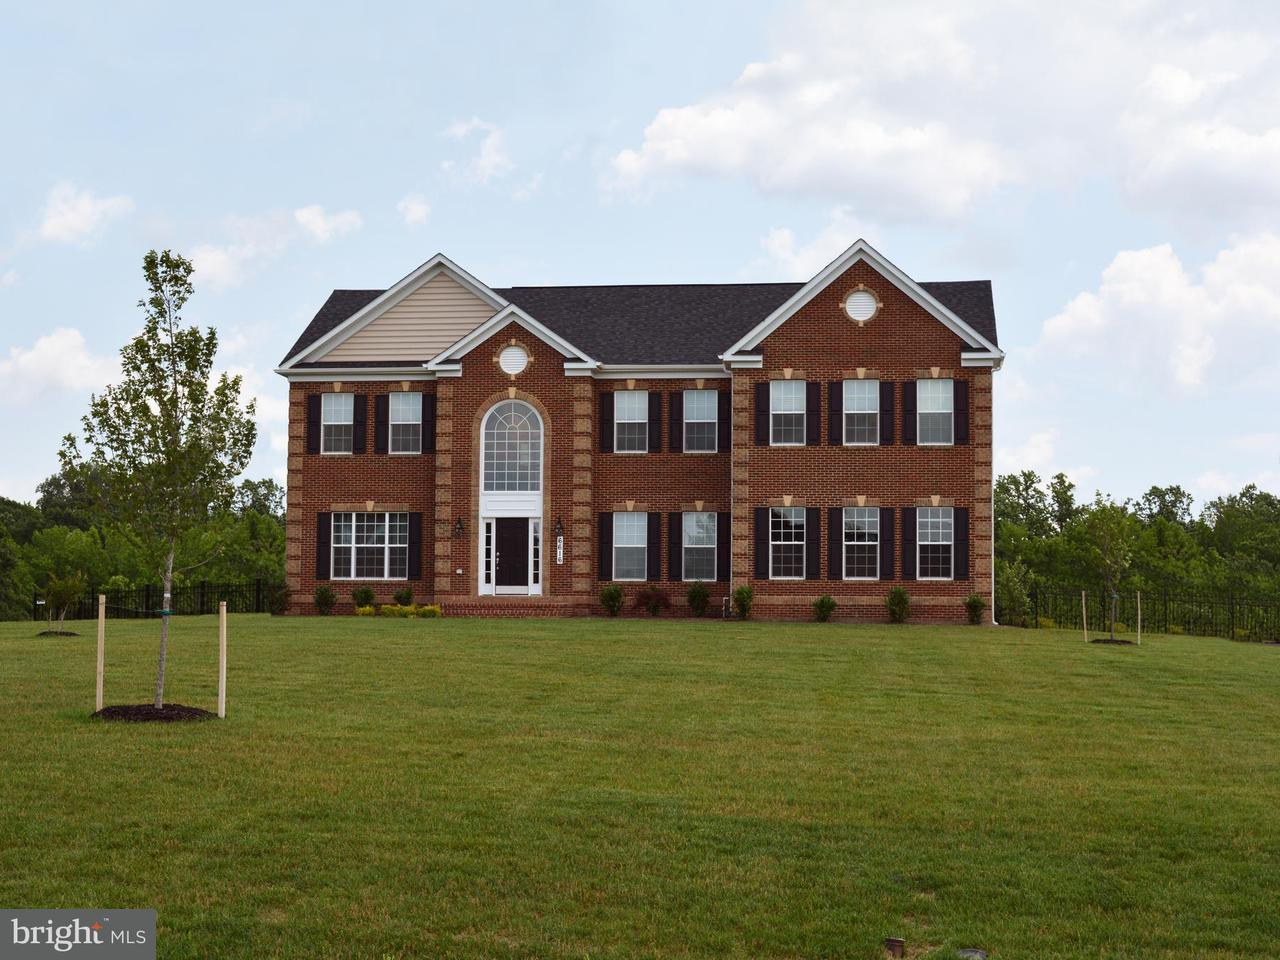 Single Family Home for Sale at 14007 YOUDERIAN Drive 14007 YOUDERIAN Drive Bowie, Maryland 20721 United States